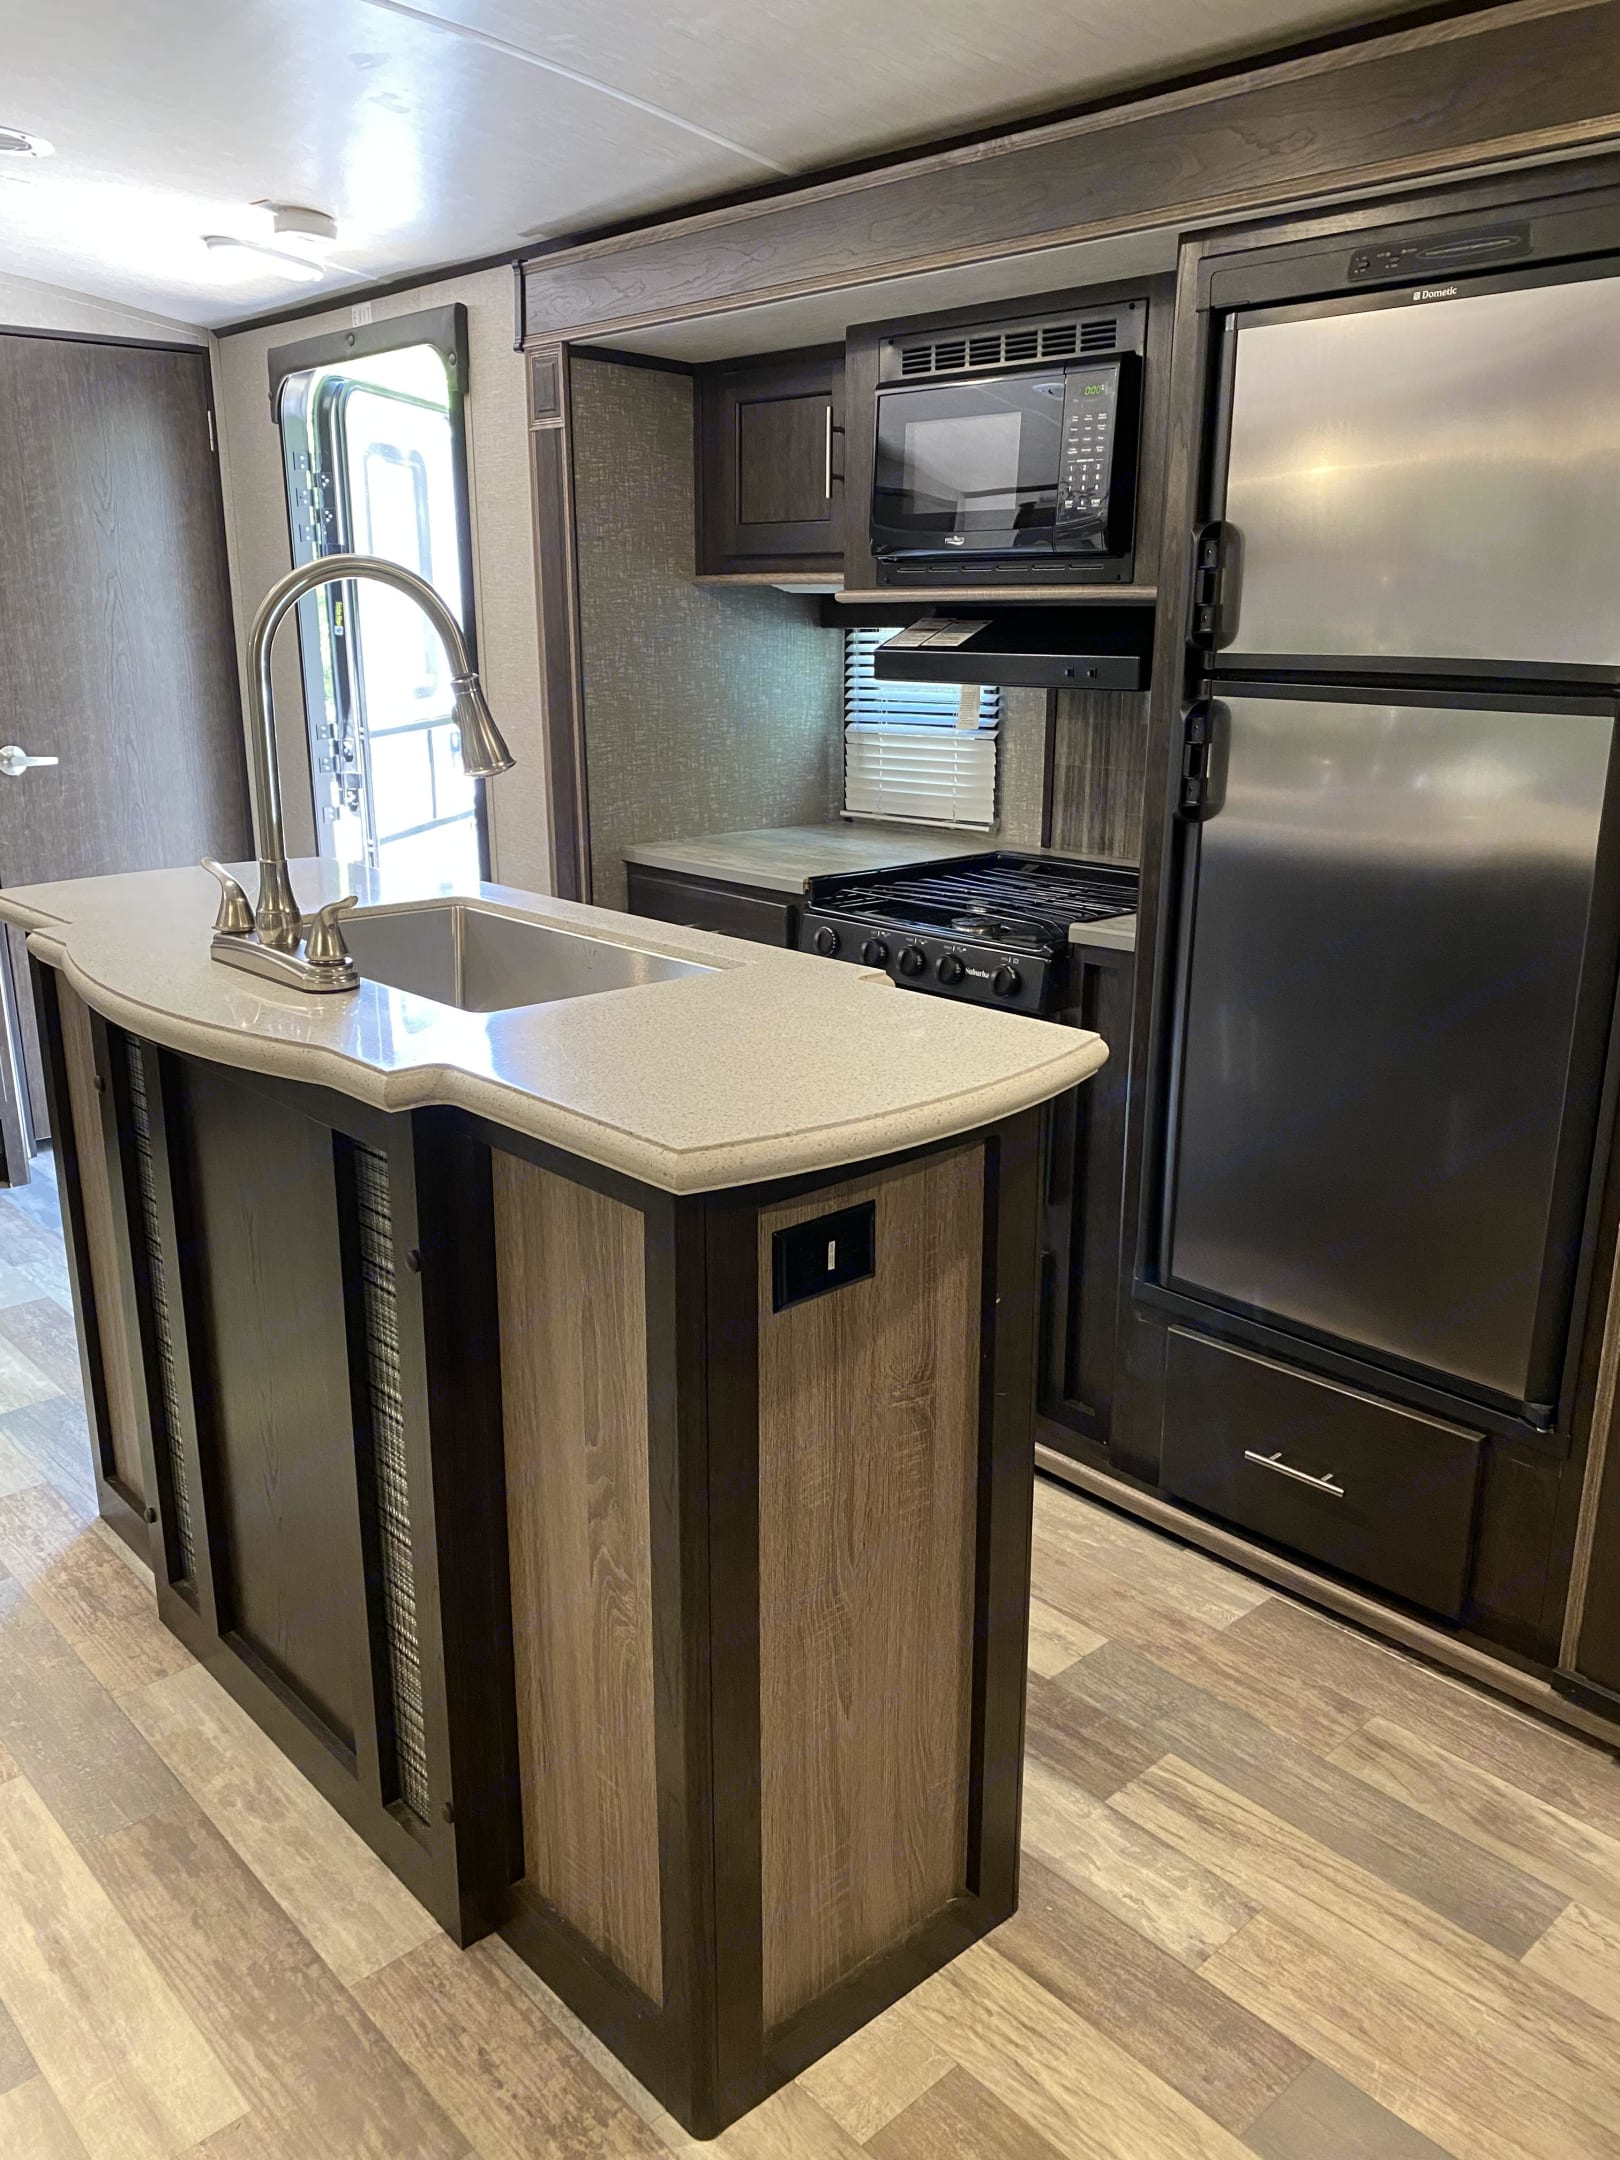 Large fridge and freezer, microwave, oven, stovetop, three workspaces for cooking, and large sink with spray faucet.. Cruiser Rv Corp Fun Finder 2017